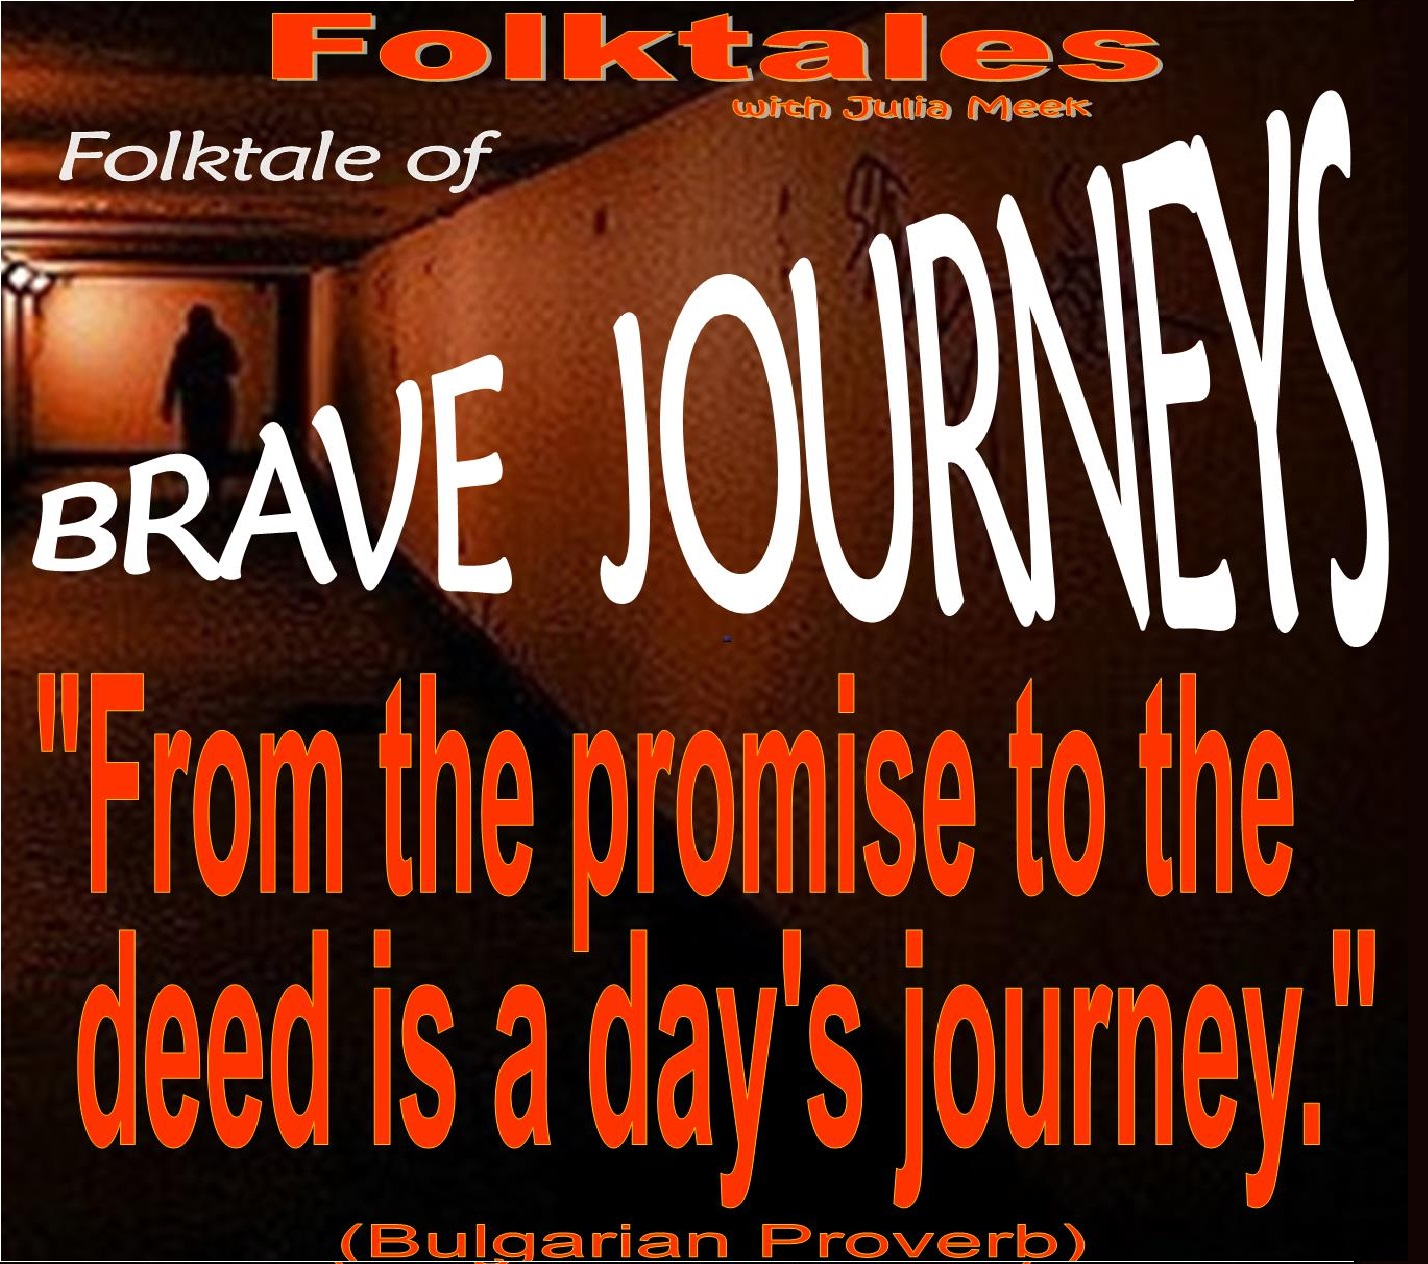 Caption: WBOI's Folktale of Brave Journeys, Credit: Julia Meek